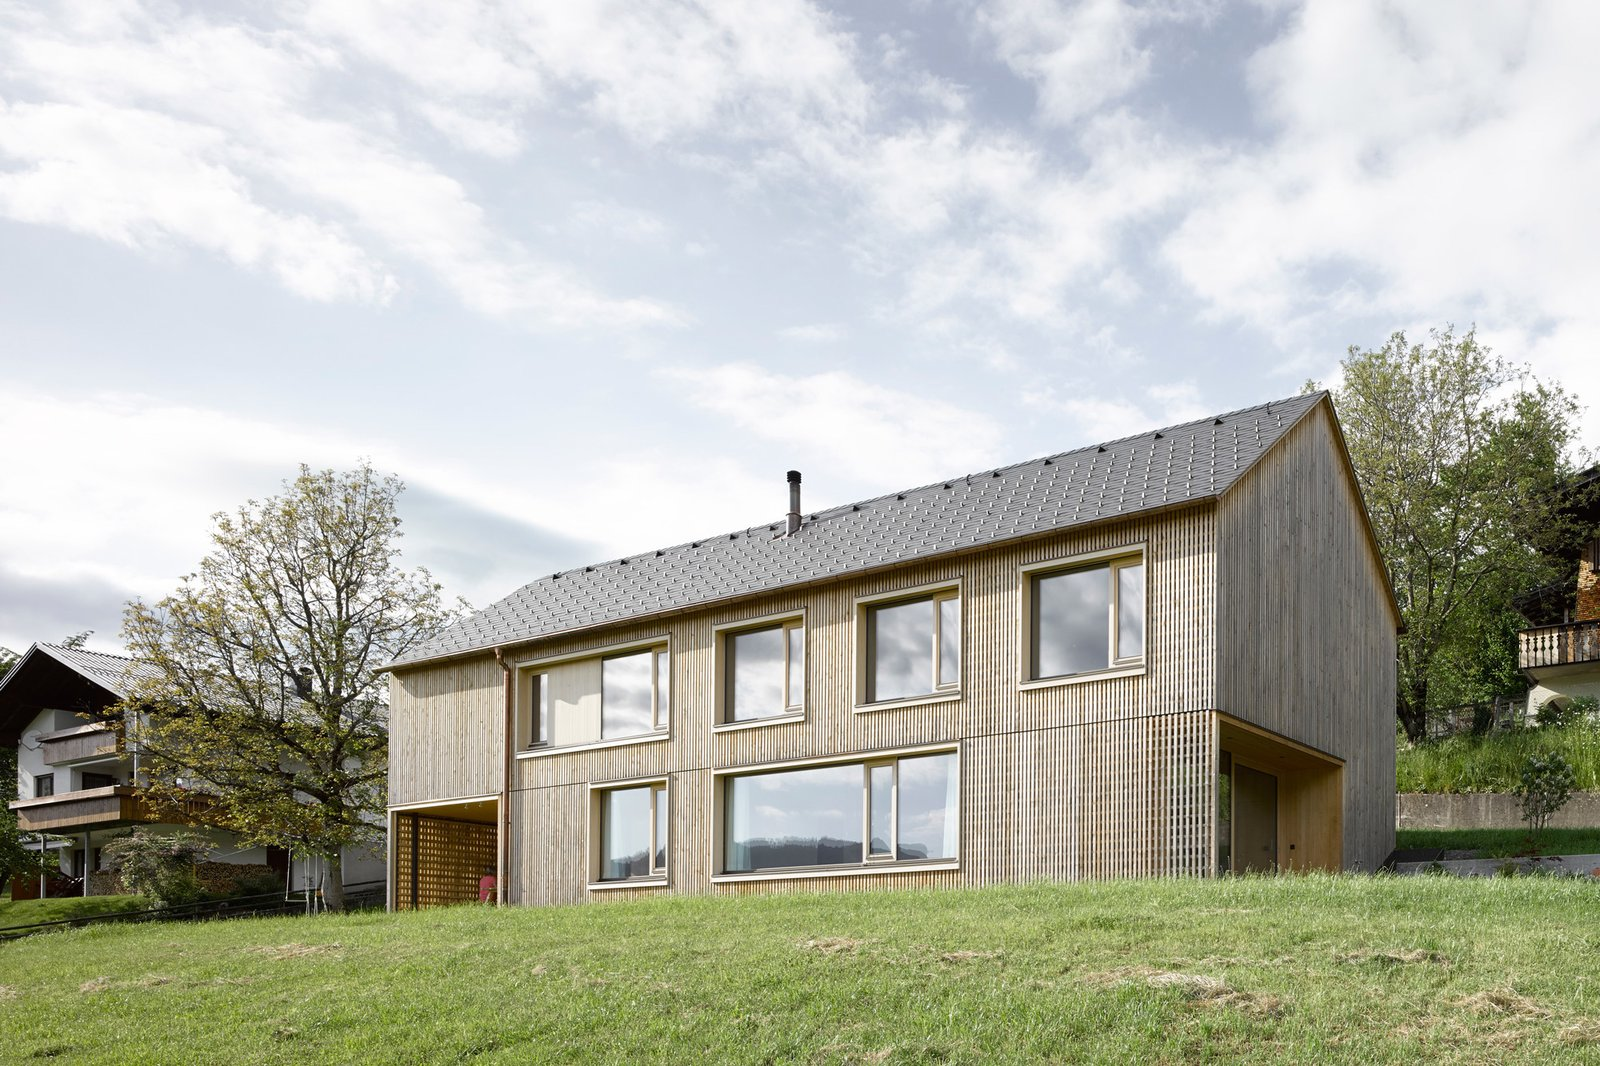 The house's simple gable form helps the house blend in with its neighbors.  Photo 10 of 10 in A Simple Gabled House Features an Intricate Latticework Shell